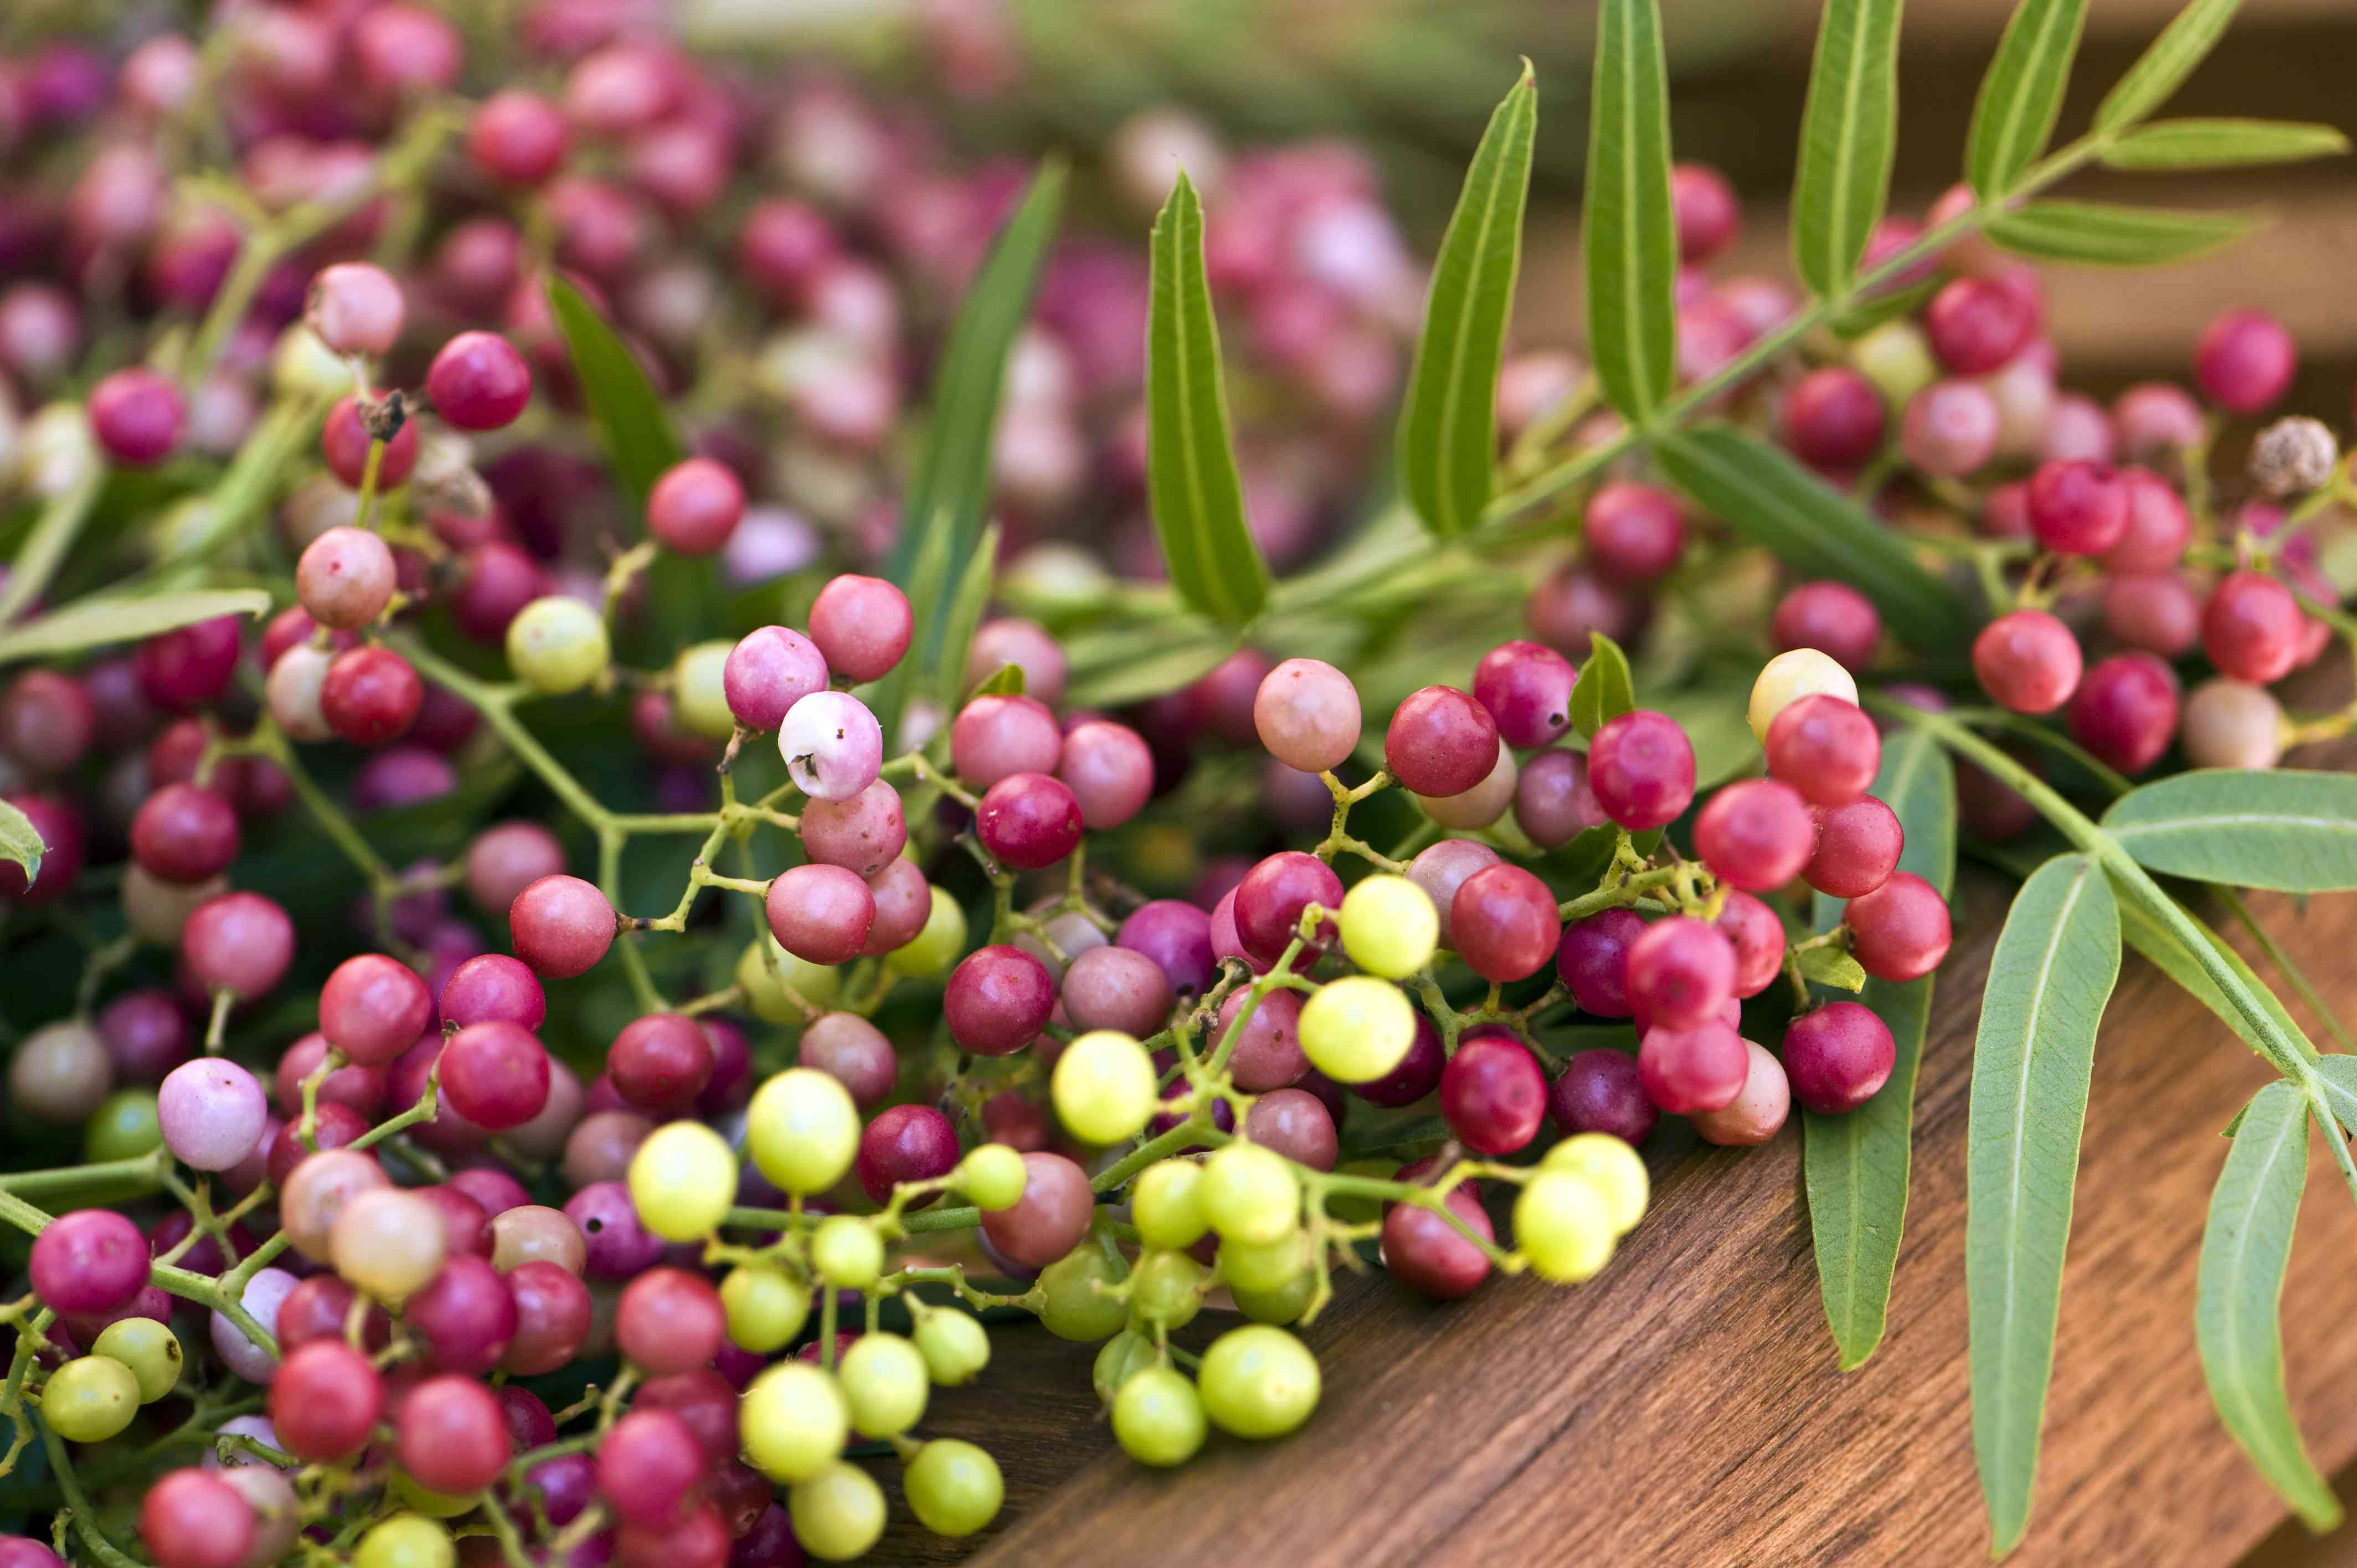 Pink Peppercorn. Color Image